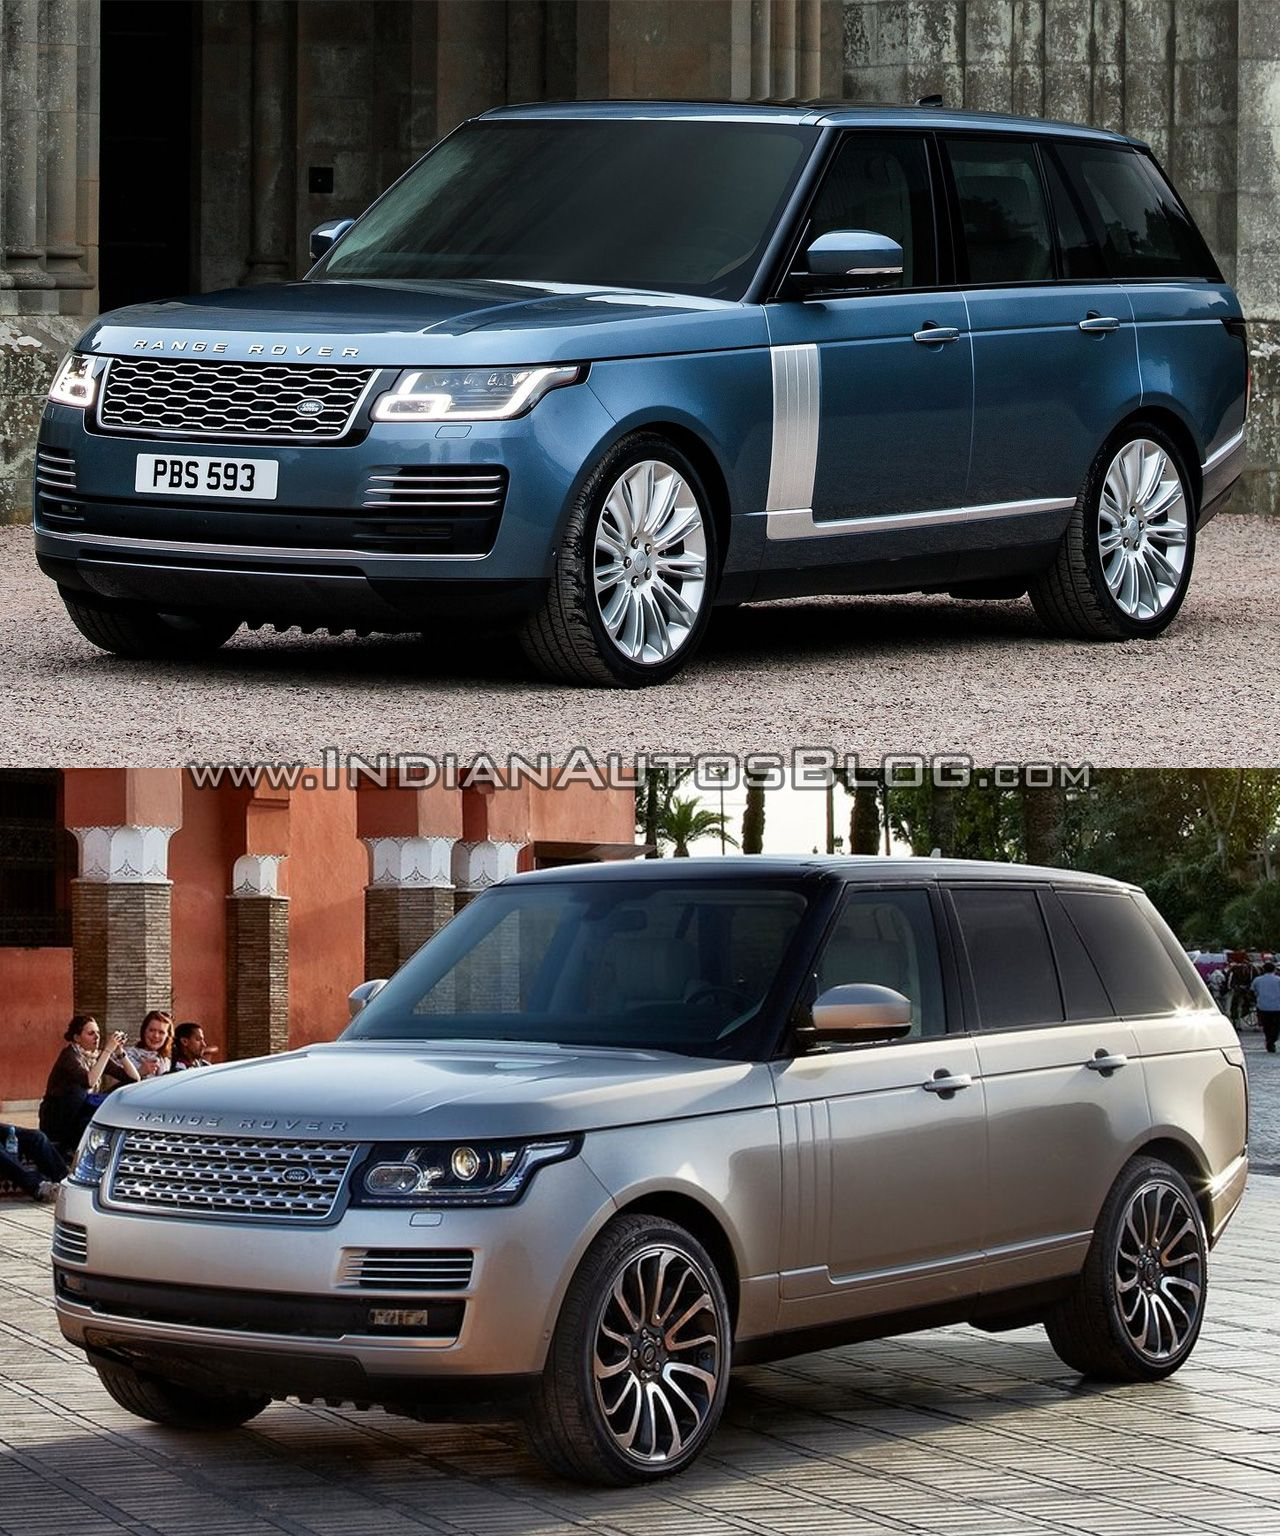 2018 Rangerover Vs 2017 Range Rover Old New